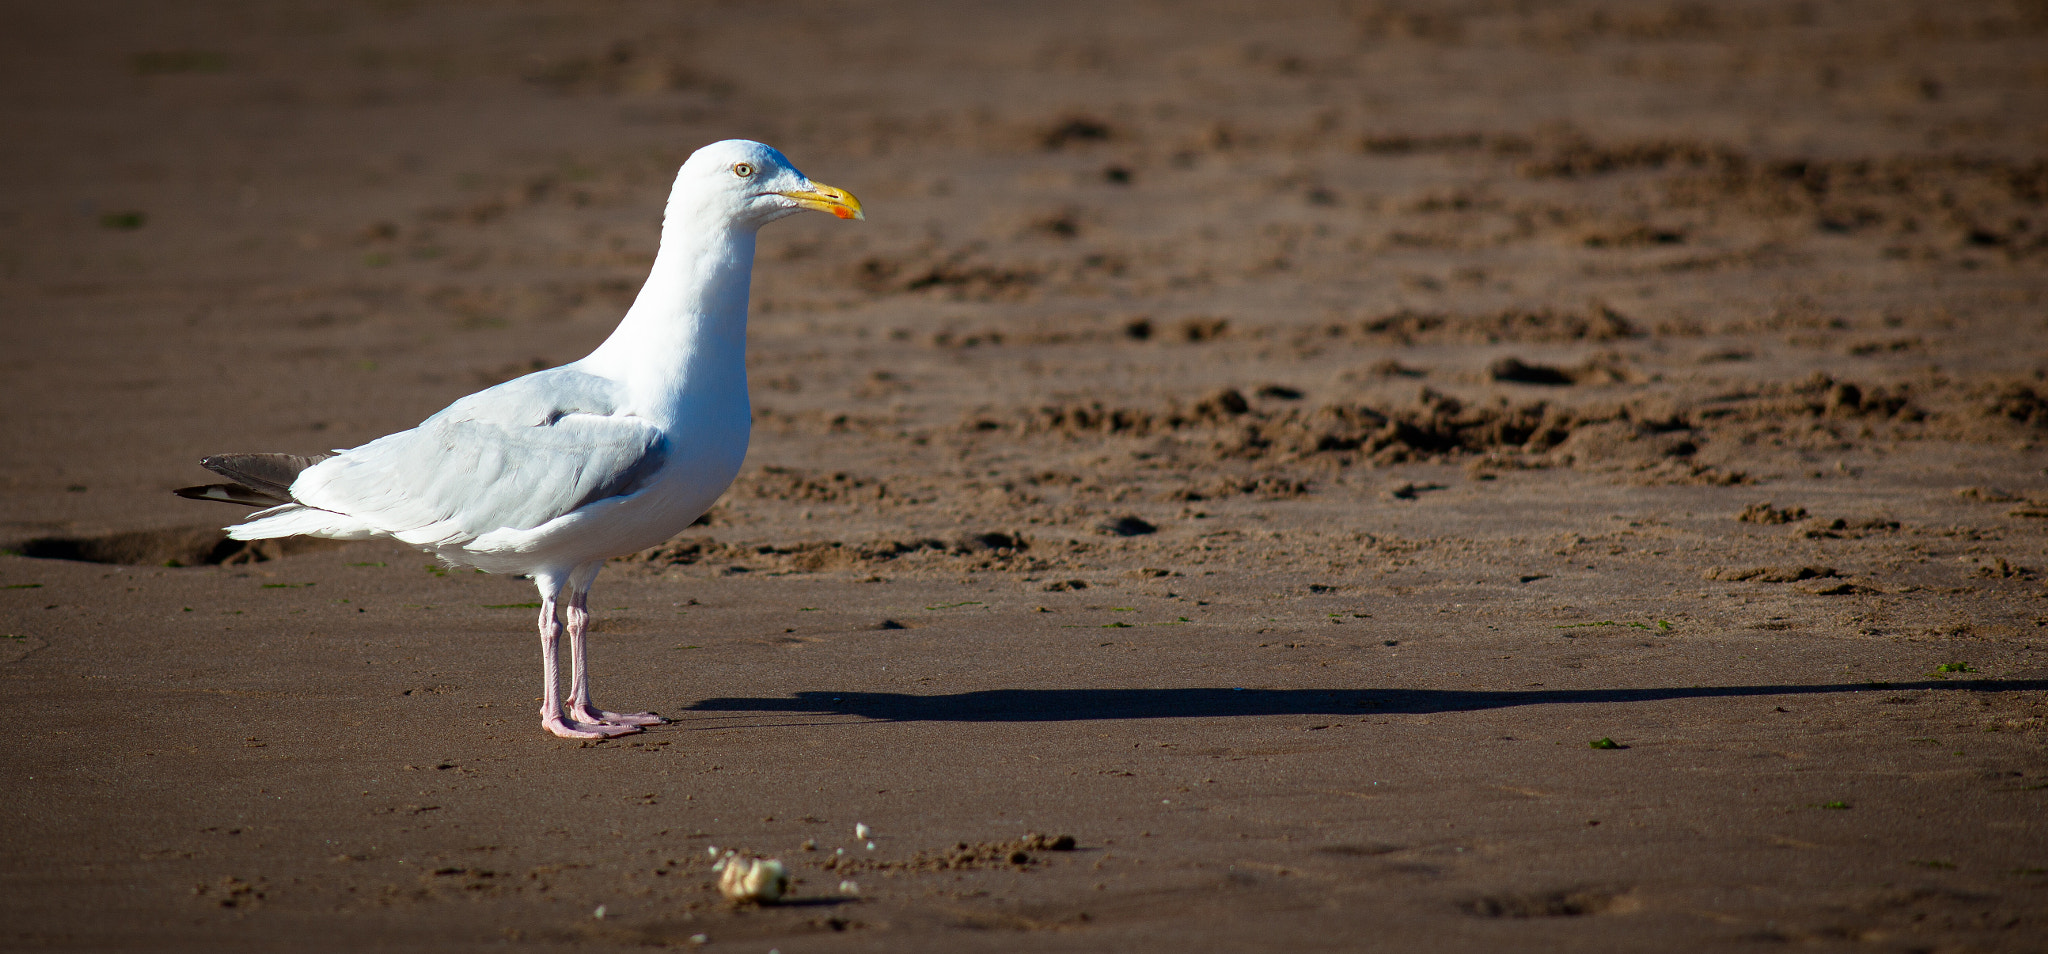 Photograph Seagull by Mike Howe on 500px